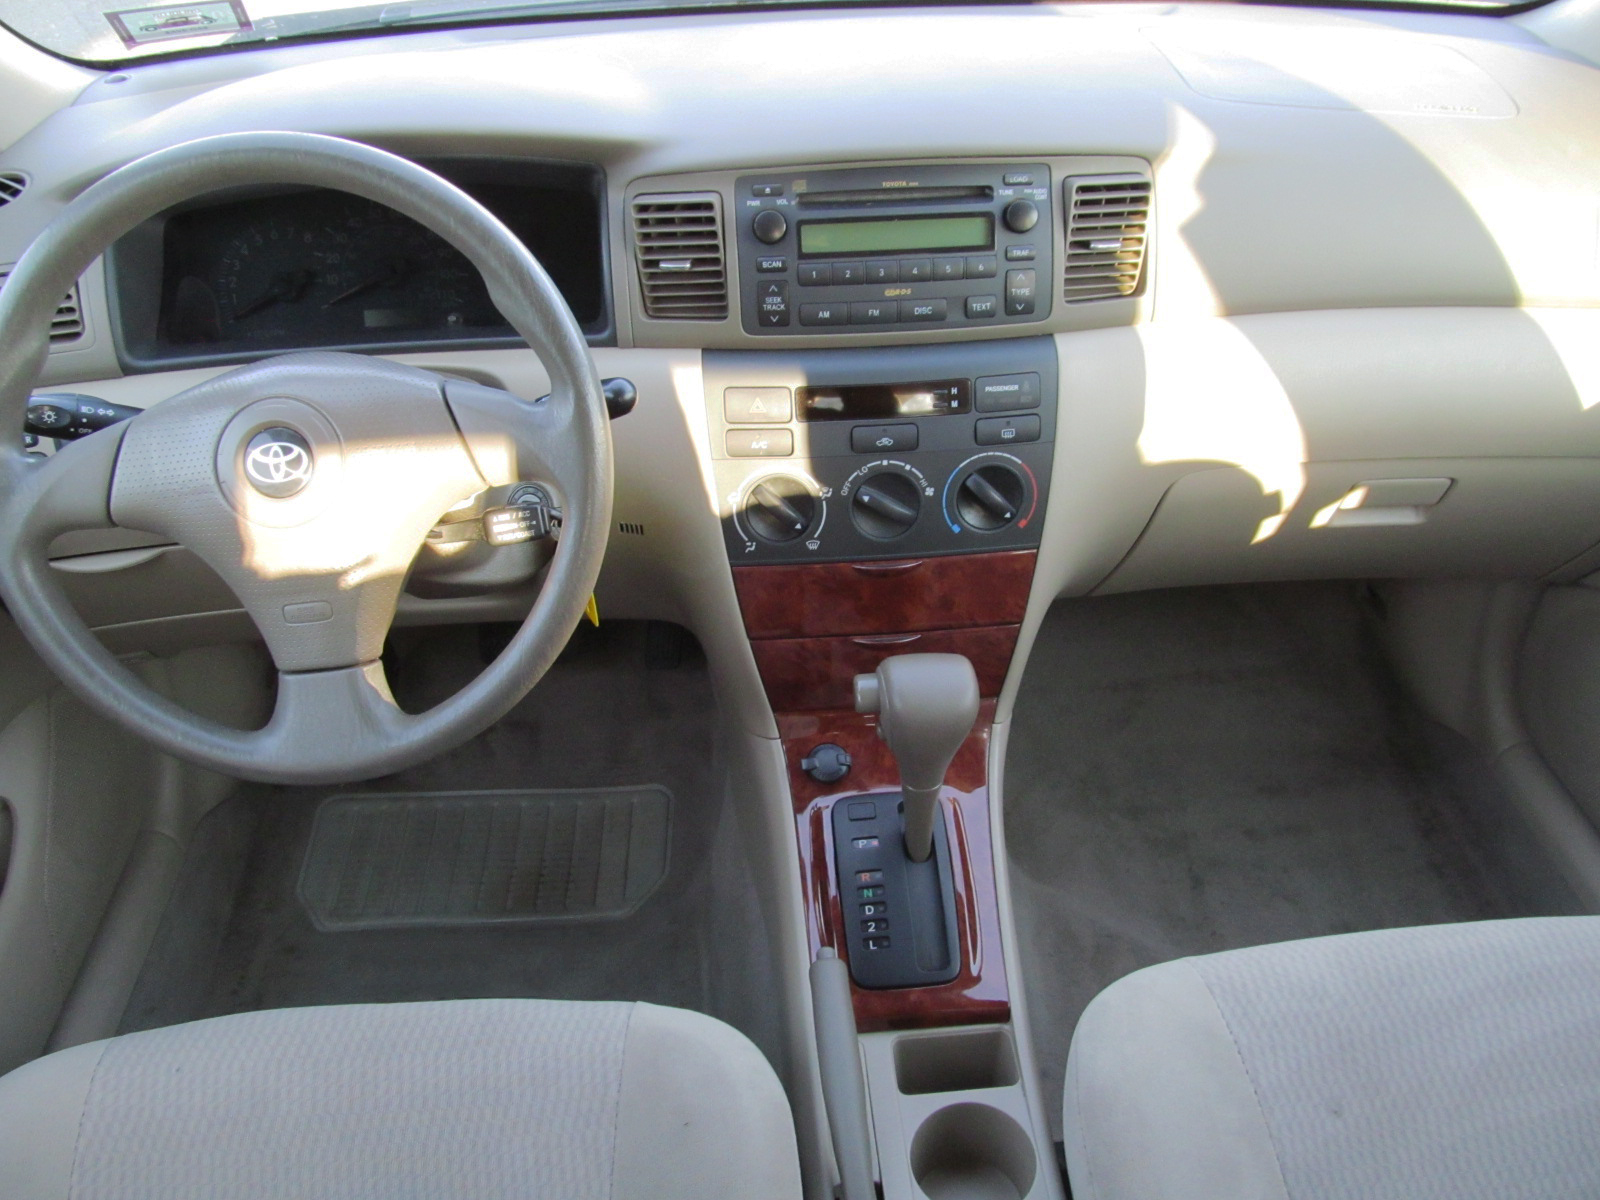 Toyota corolla 2005 interior for Toyota corolla 2003 interior